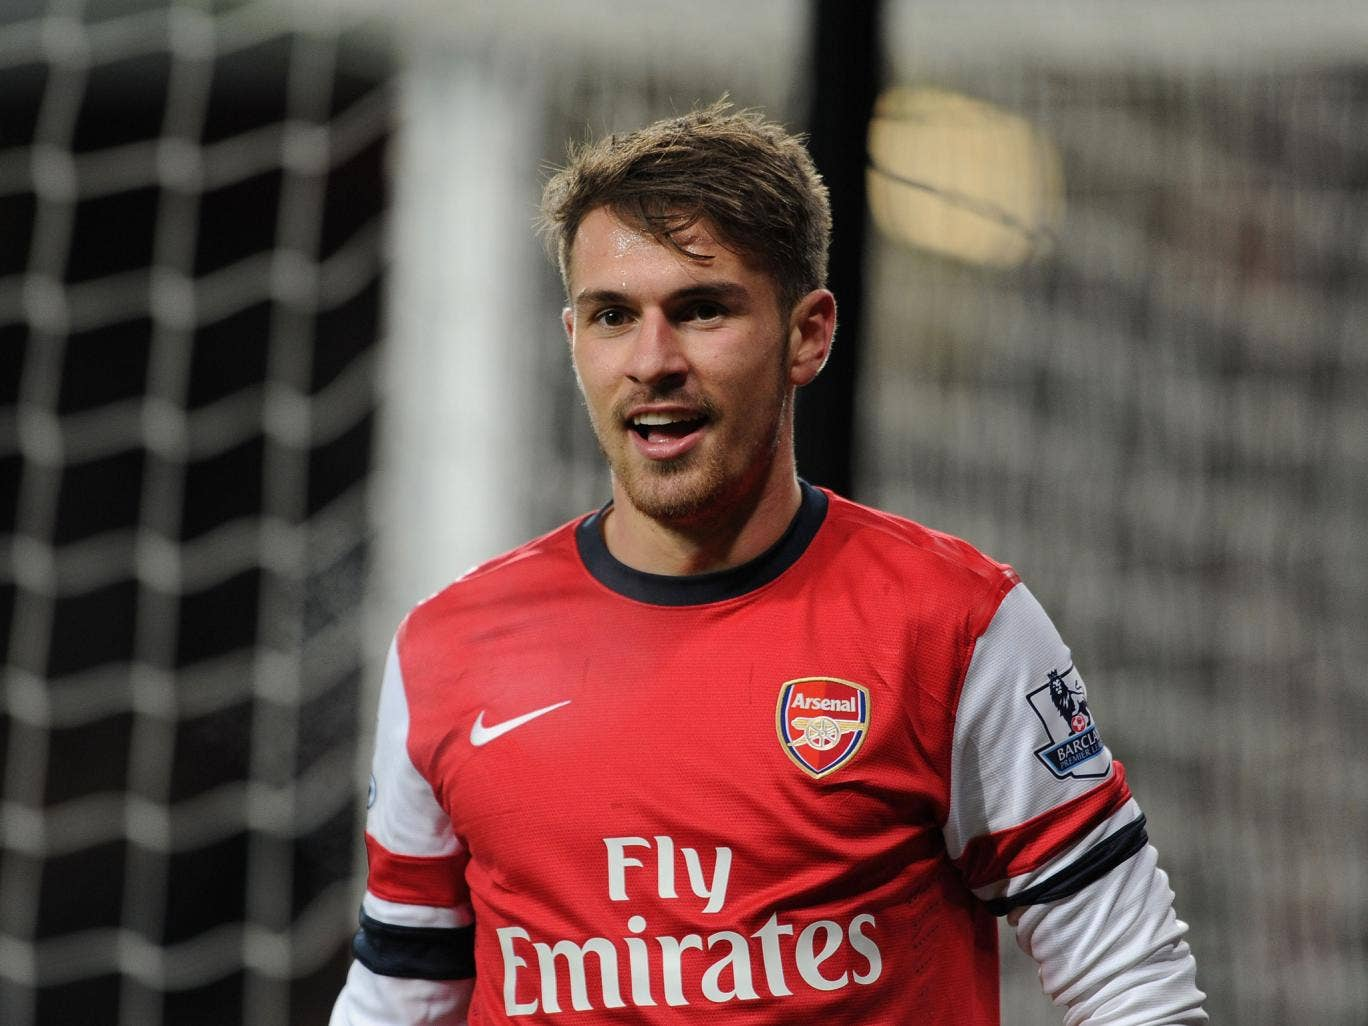 Aaron Ramsey insists he never doubted his own ability after becoming Arsenal's stand-out star this season